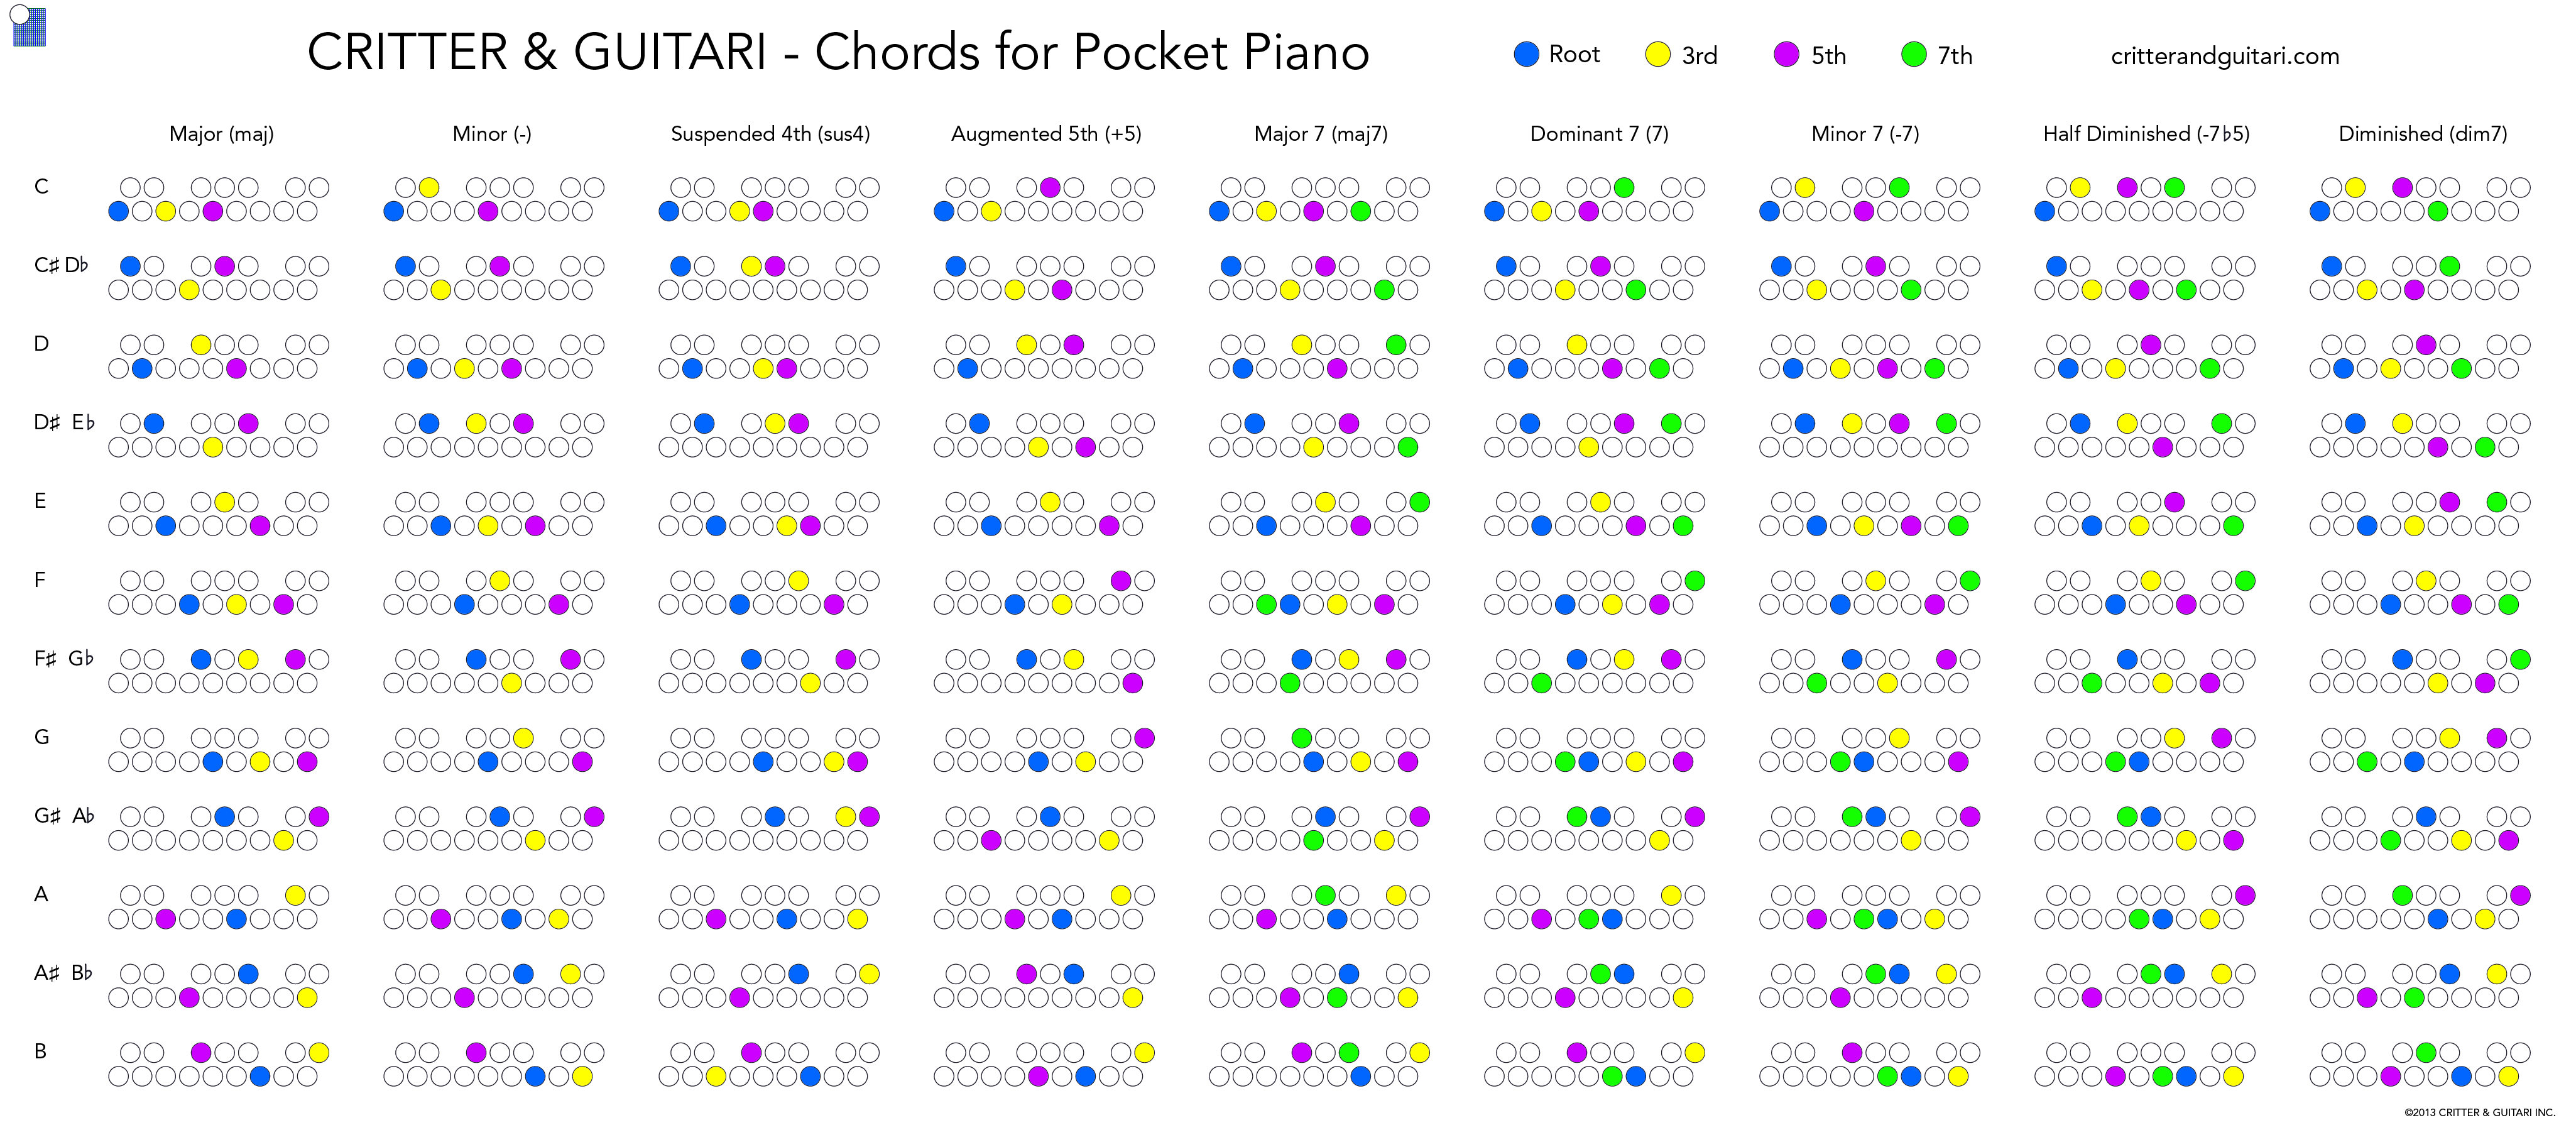 Critter guitari chords for pocket piano music pinterest critter guitari chords for pocket piano hexwebz Gallery